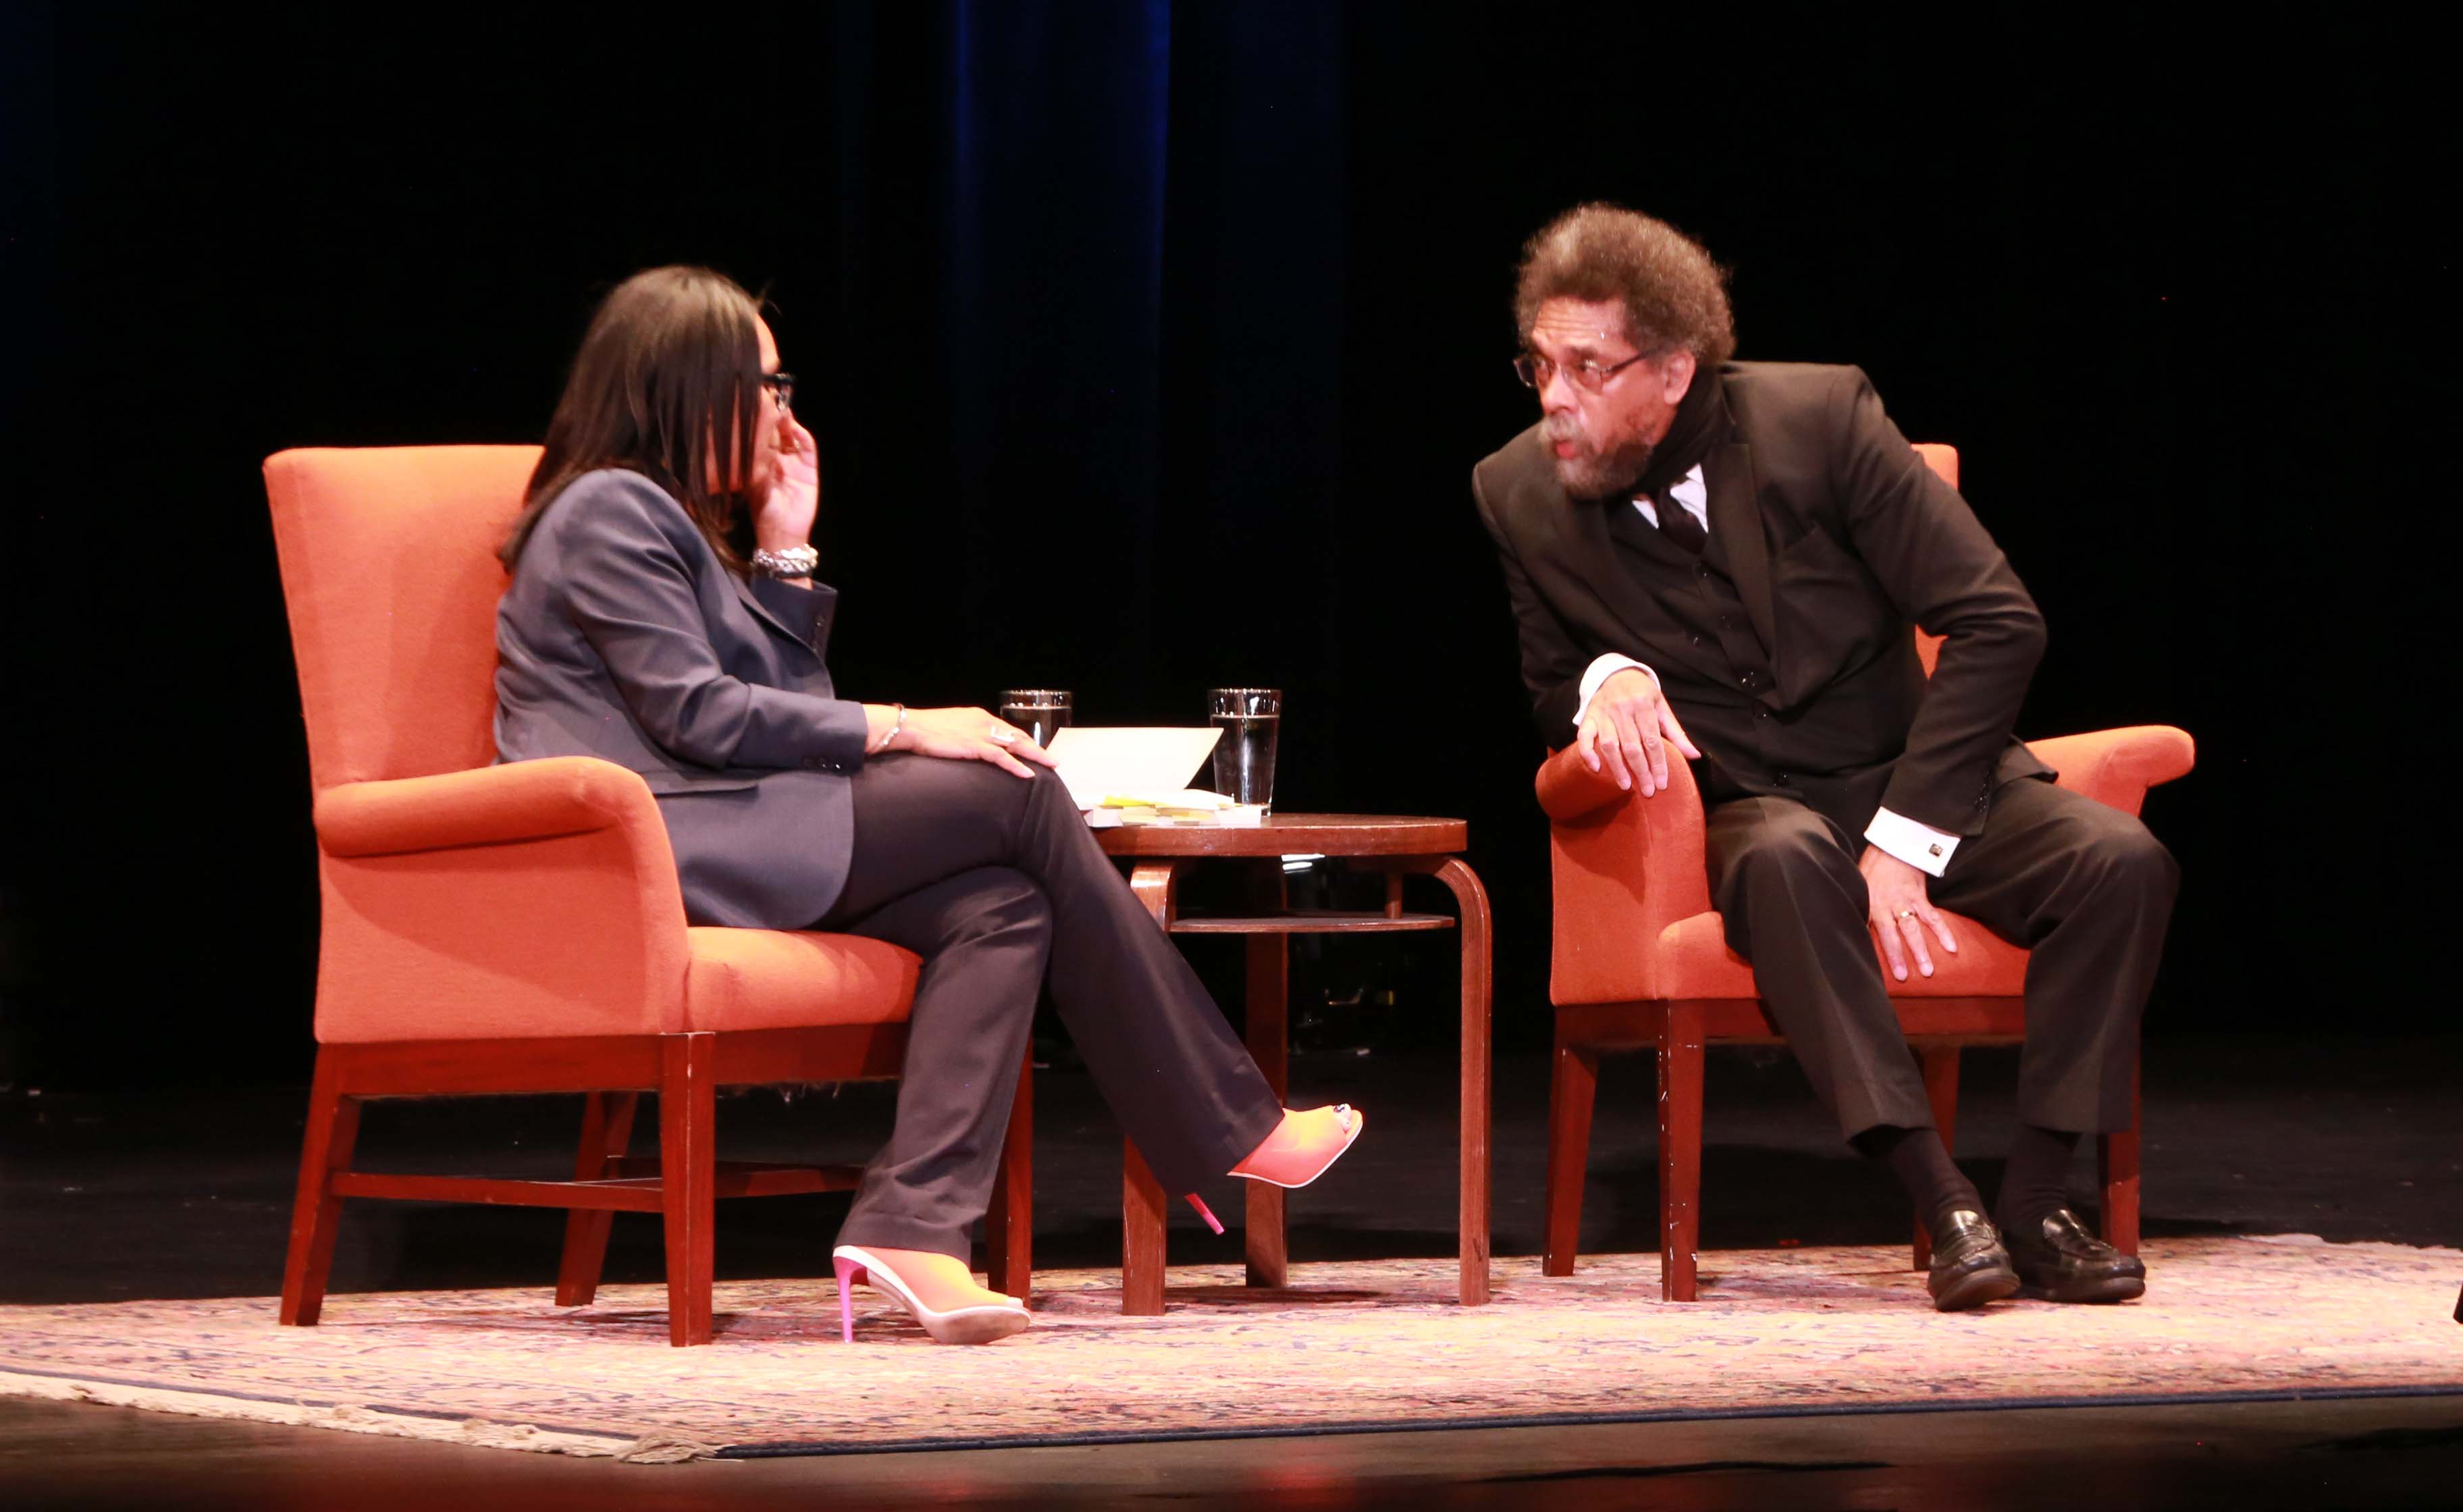 HRC Director Sheryl Davis in conversation with Dr Cornel West